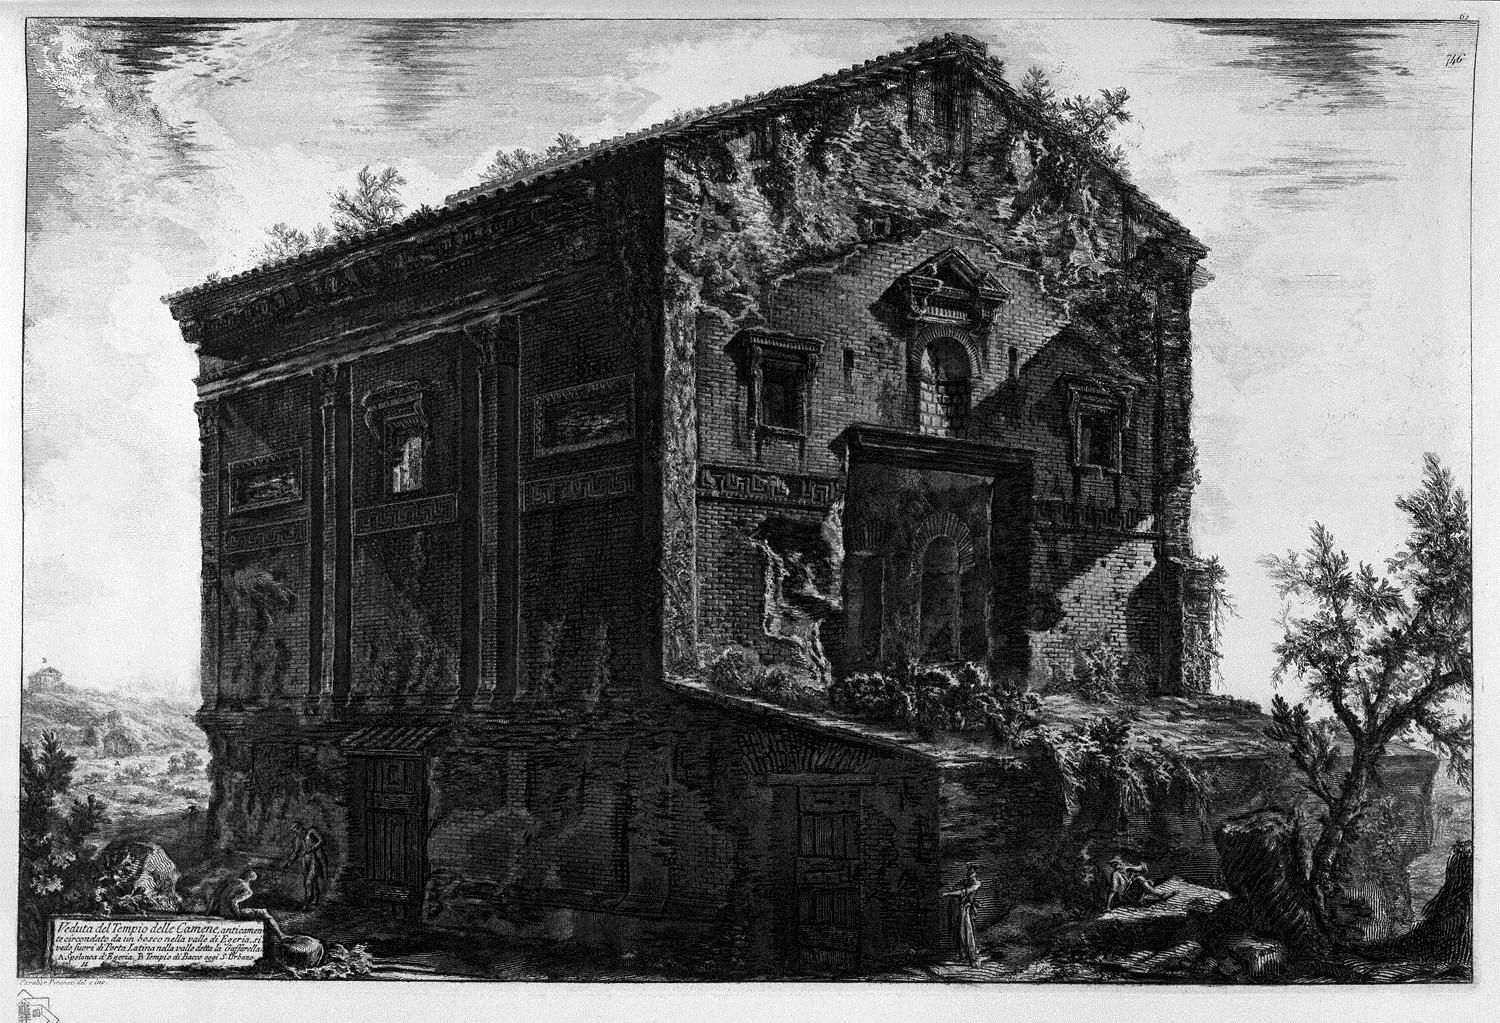 Giovanni Battista Piranesi - The Roman antiquities, t. 1, Plate XXIII. Aventine Hill.